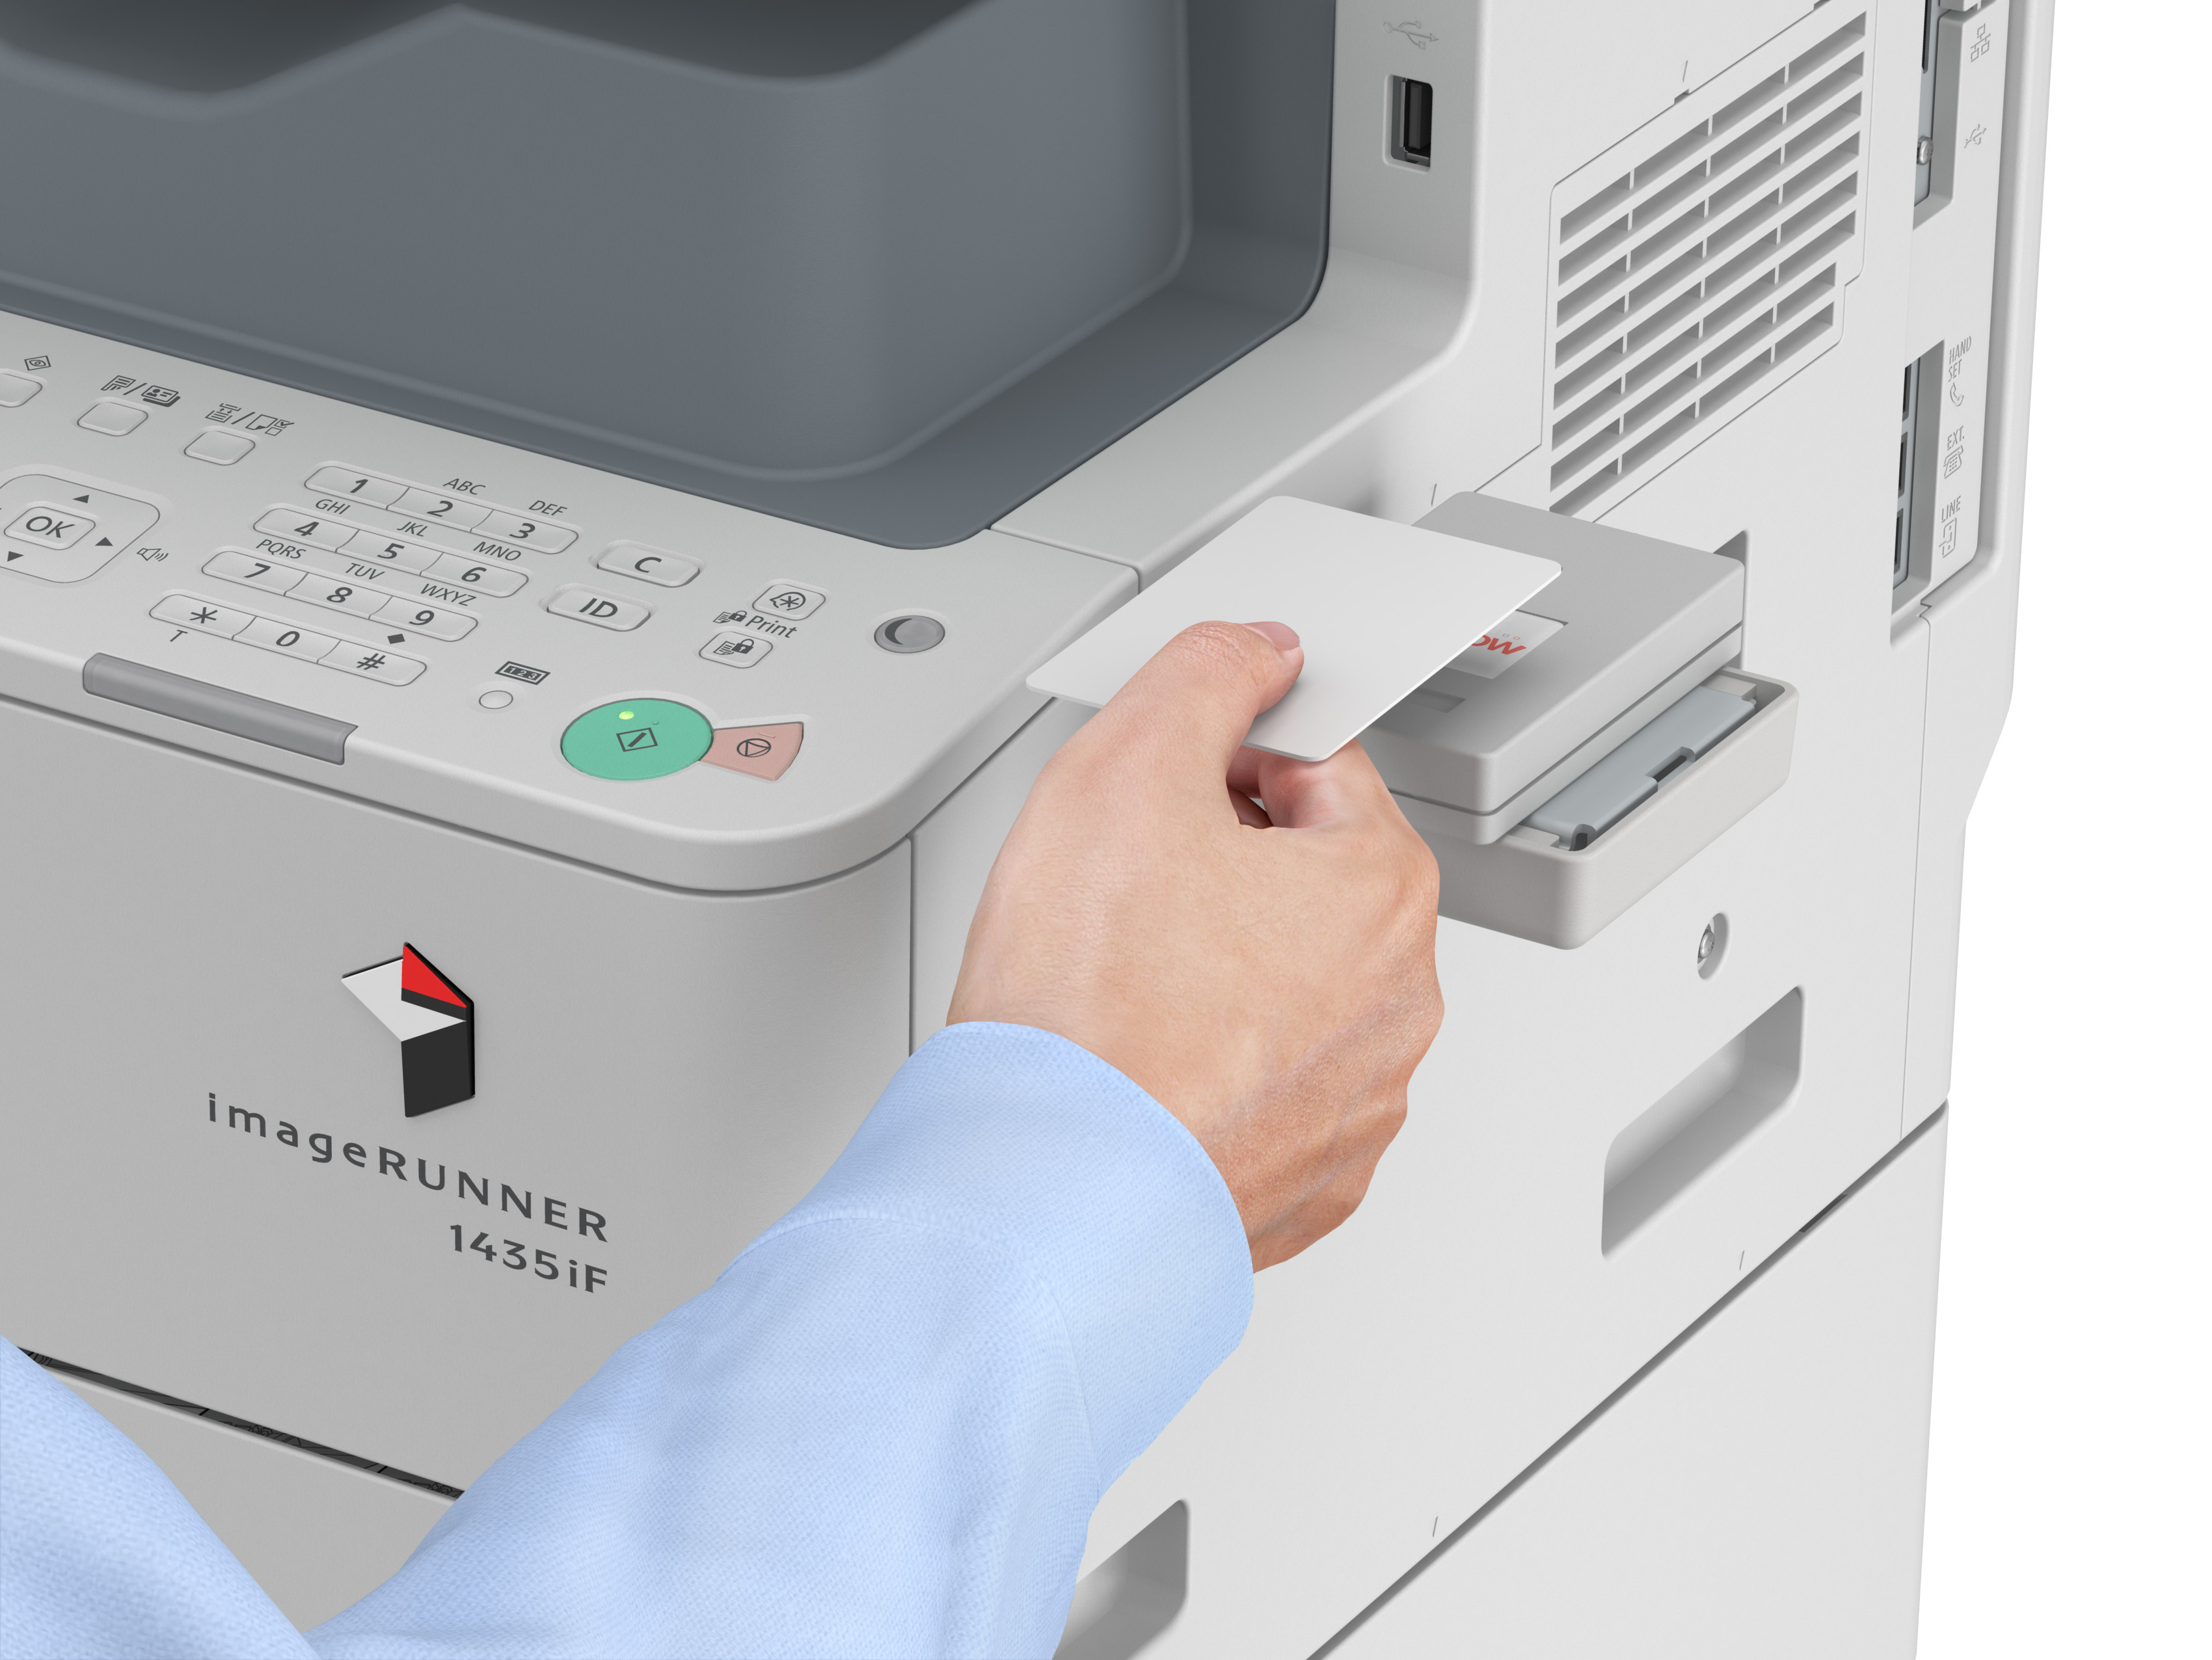 Managed services provider Annodata is warning businesses of the security risks posed by internet-enabled printers